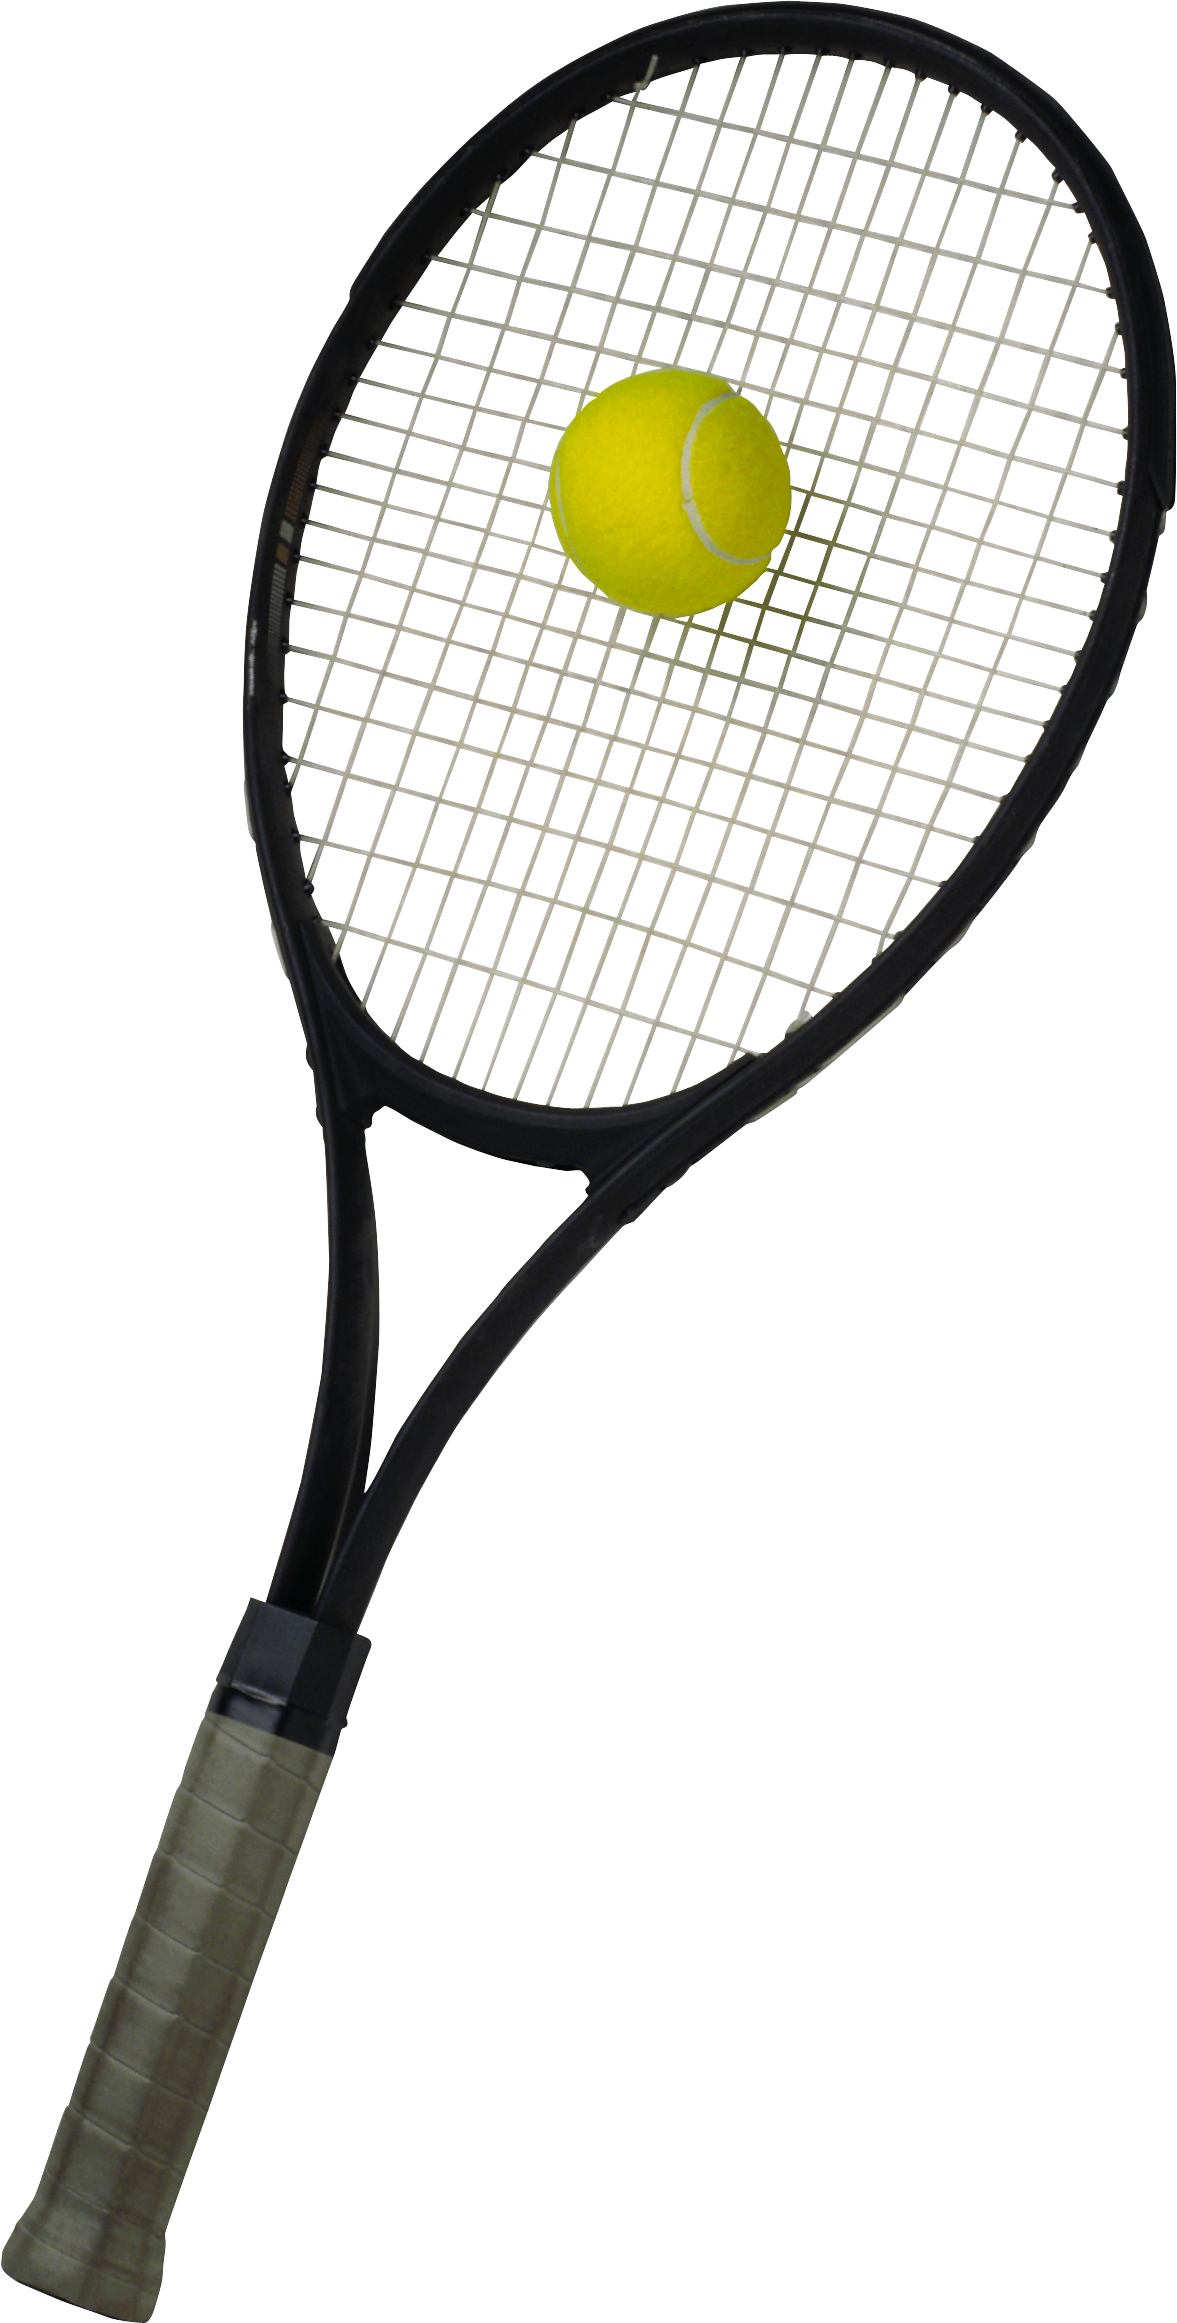 Tennis Racket Png Image Tennis Rackets Tennis Racket